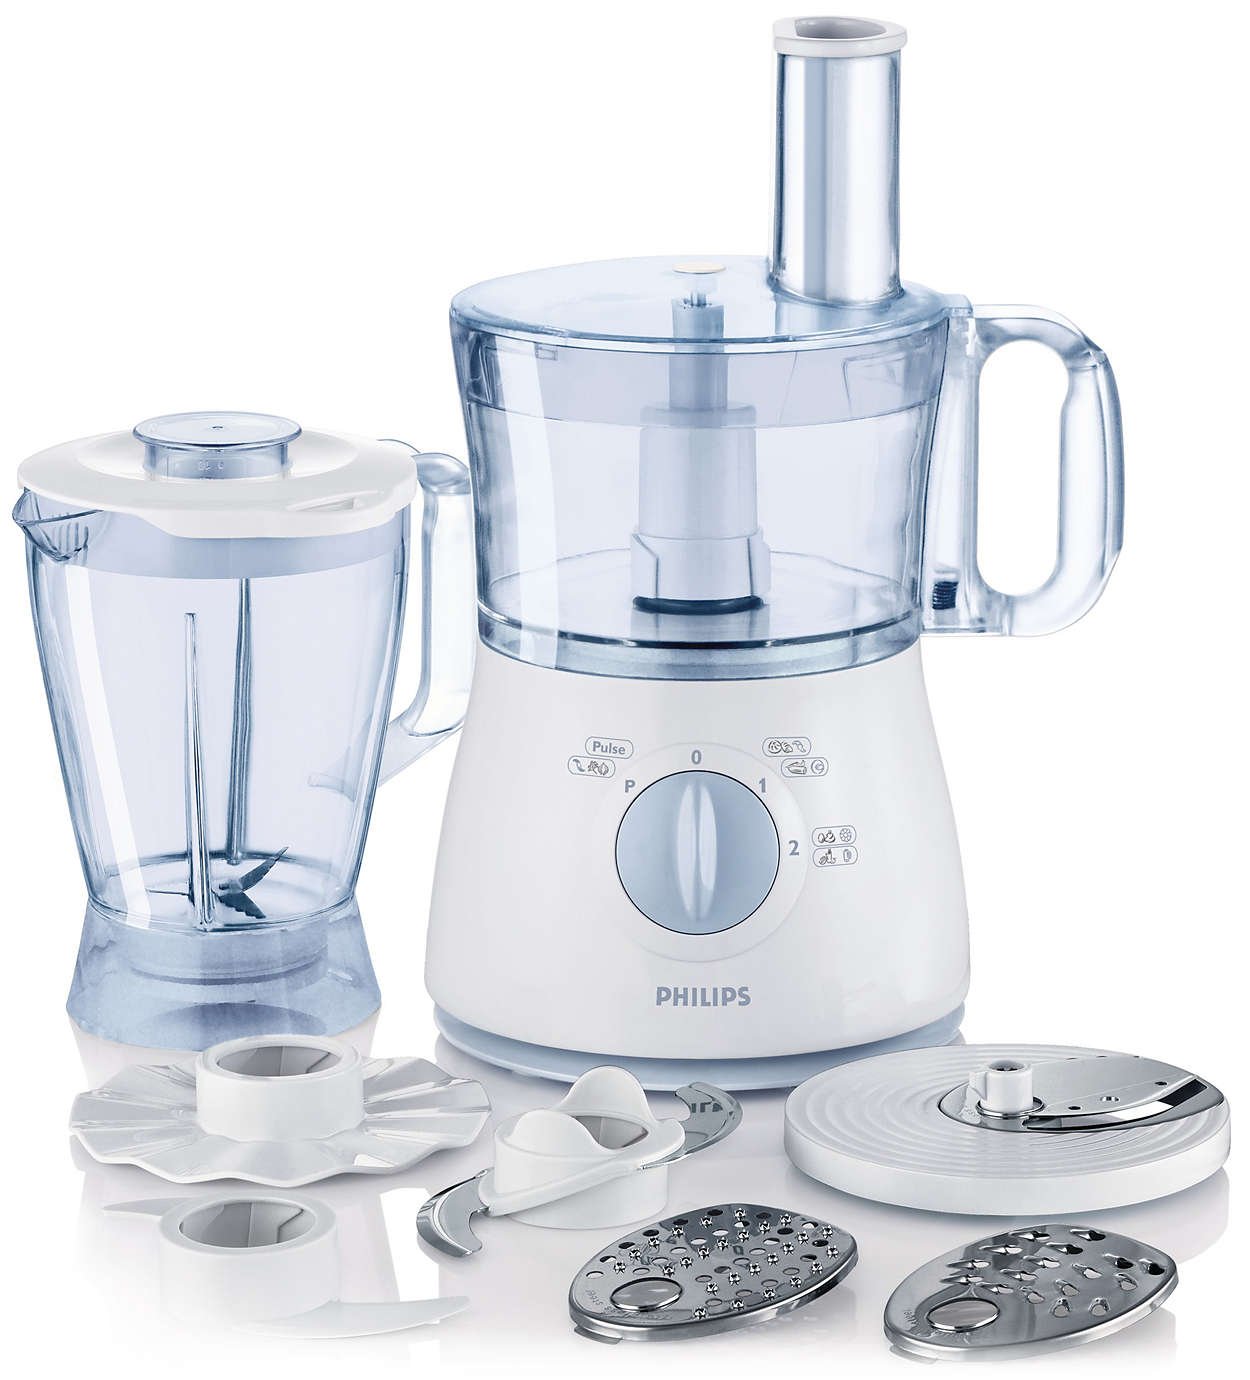 Philips Food Processor Blender Juicer